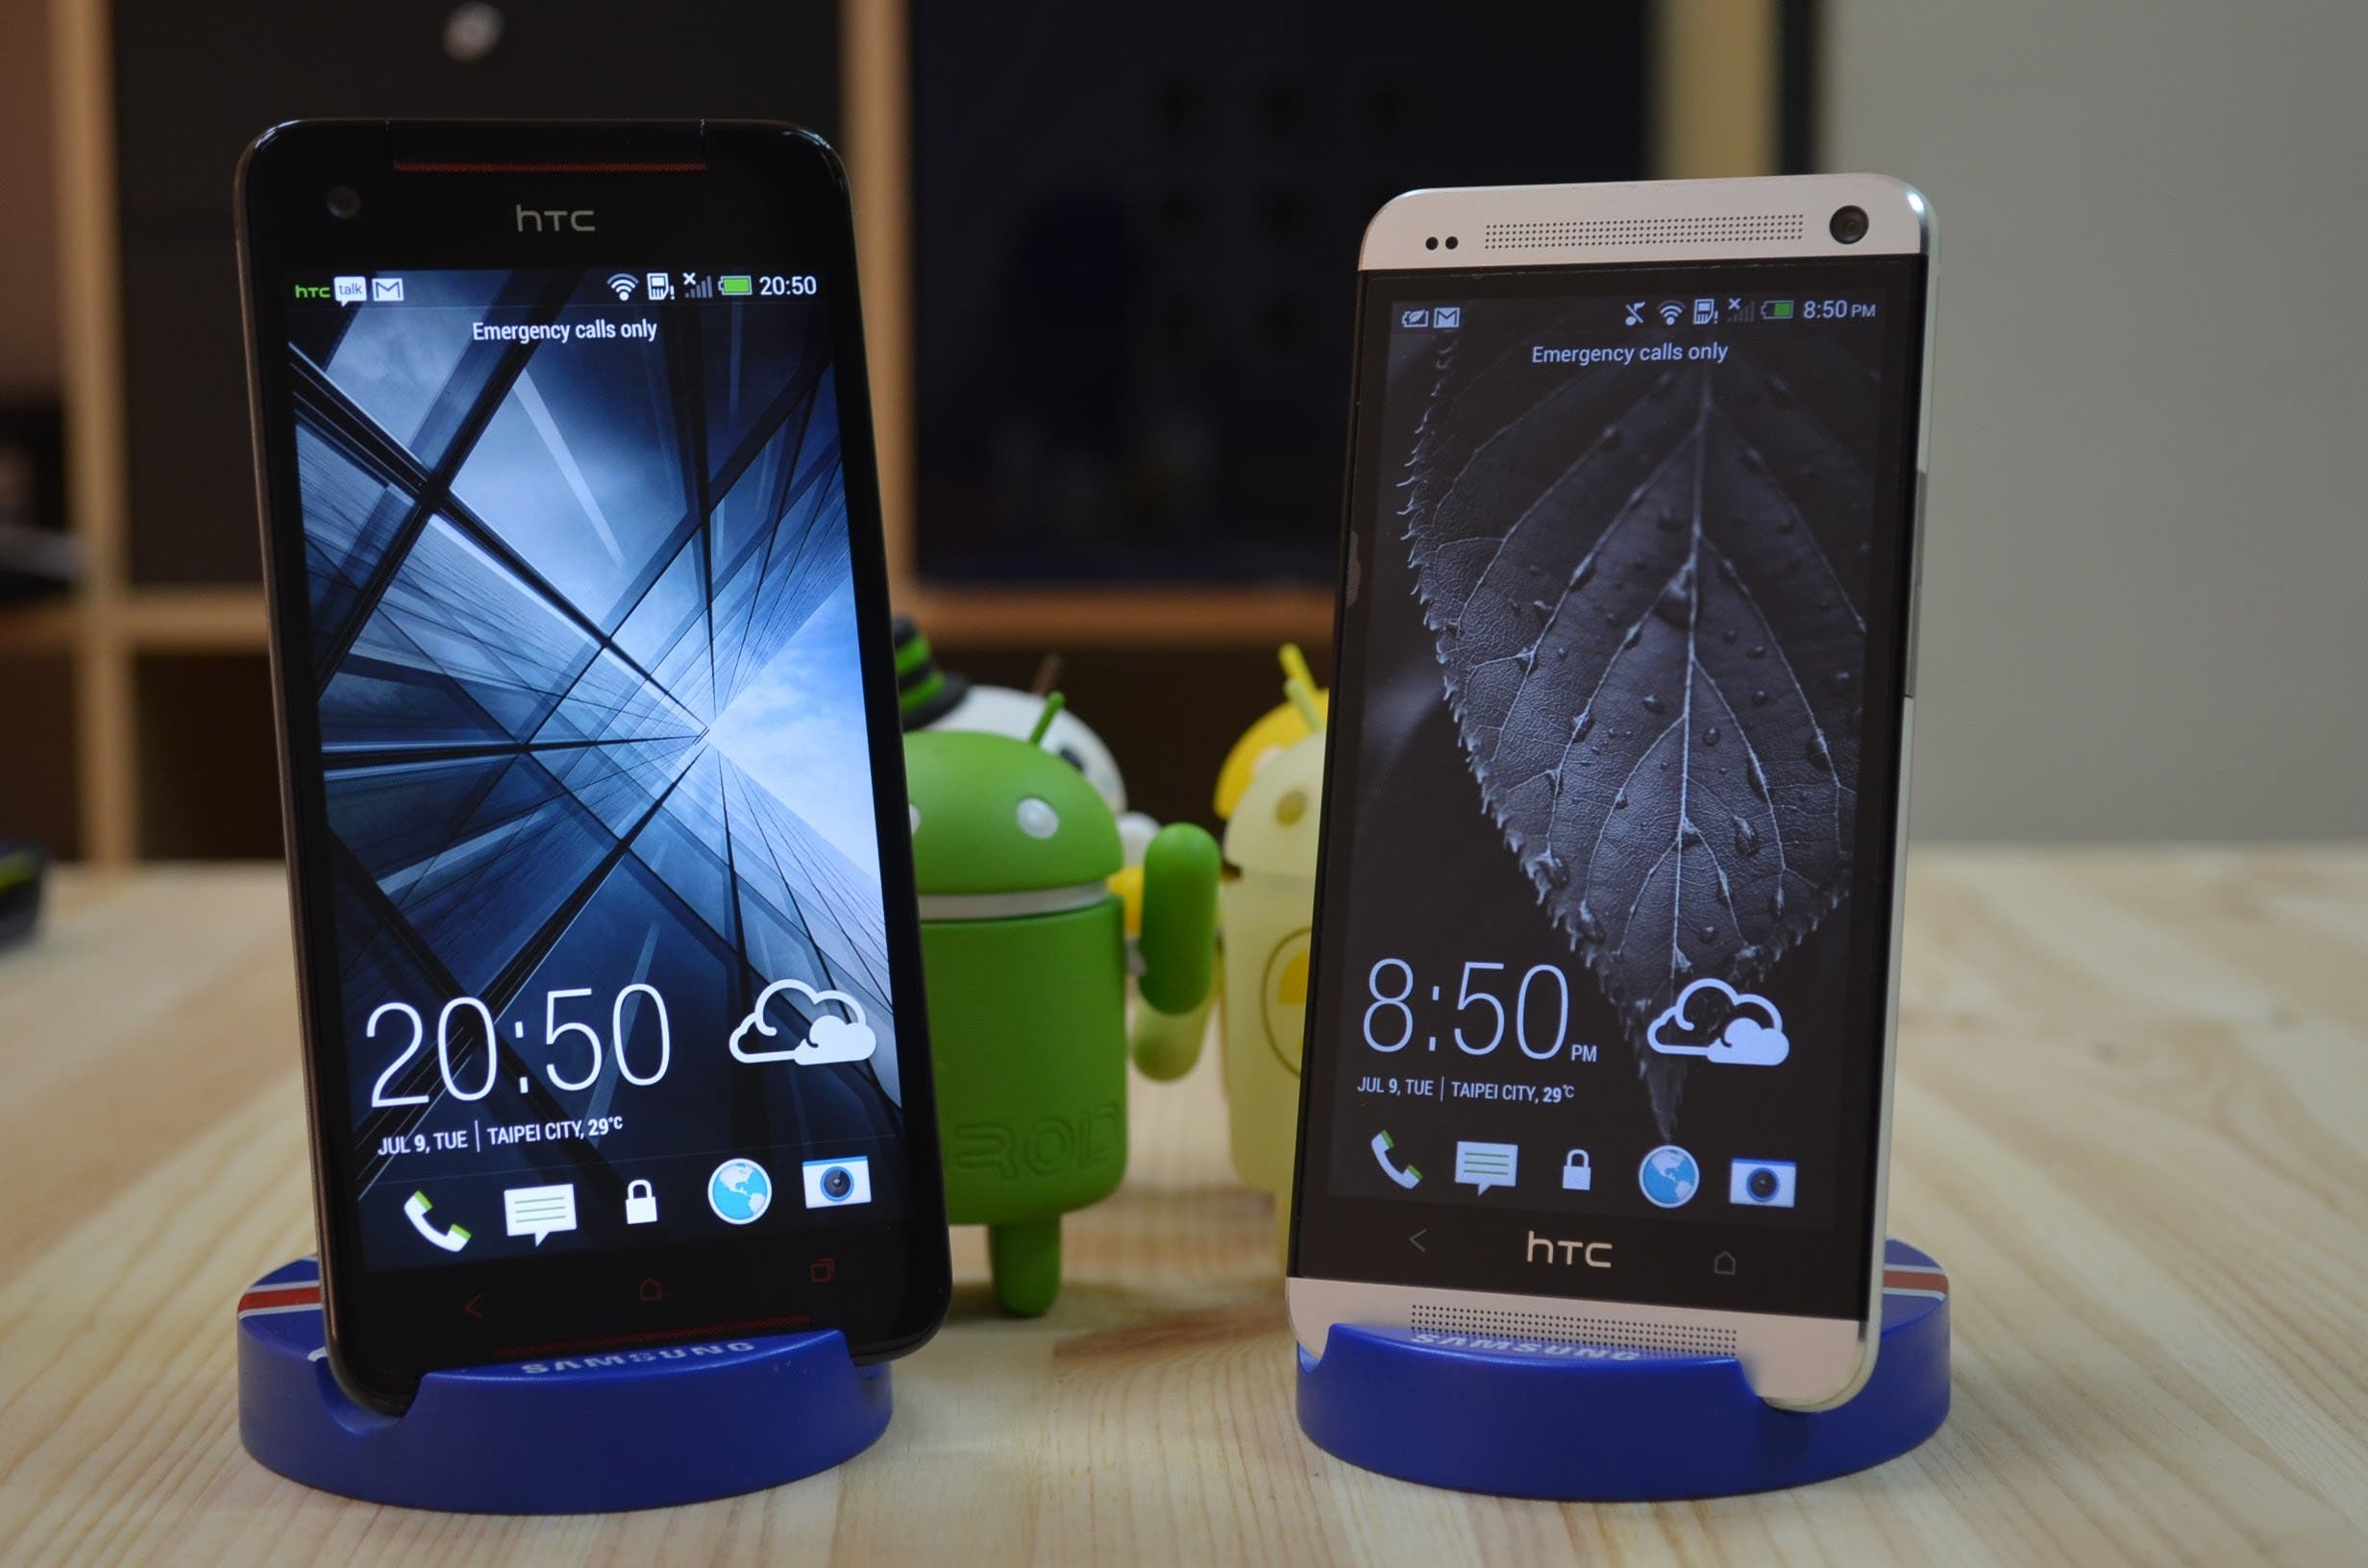 HTC Butterfly S vs HTC One